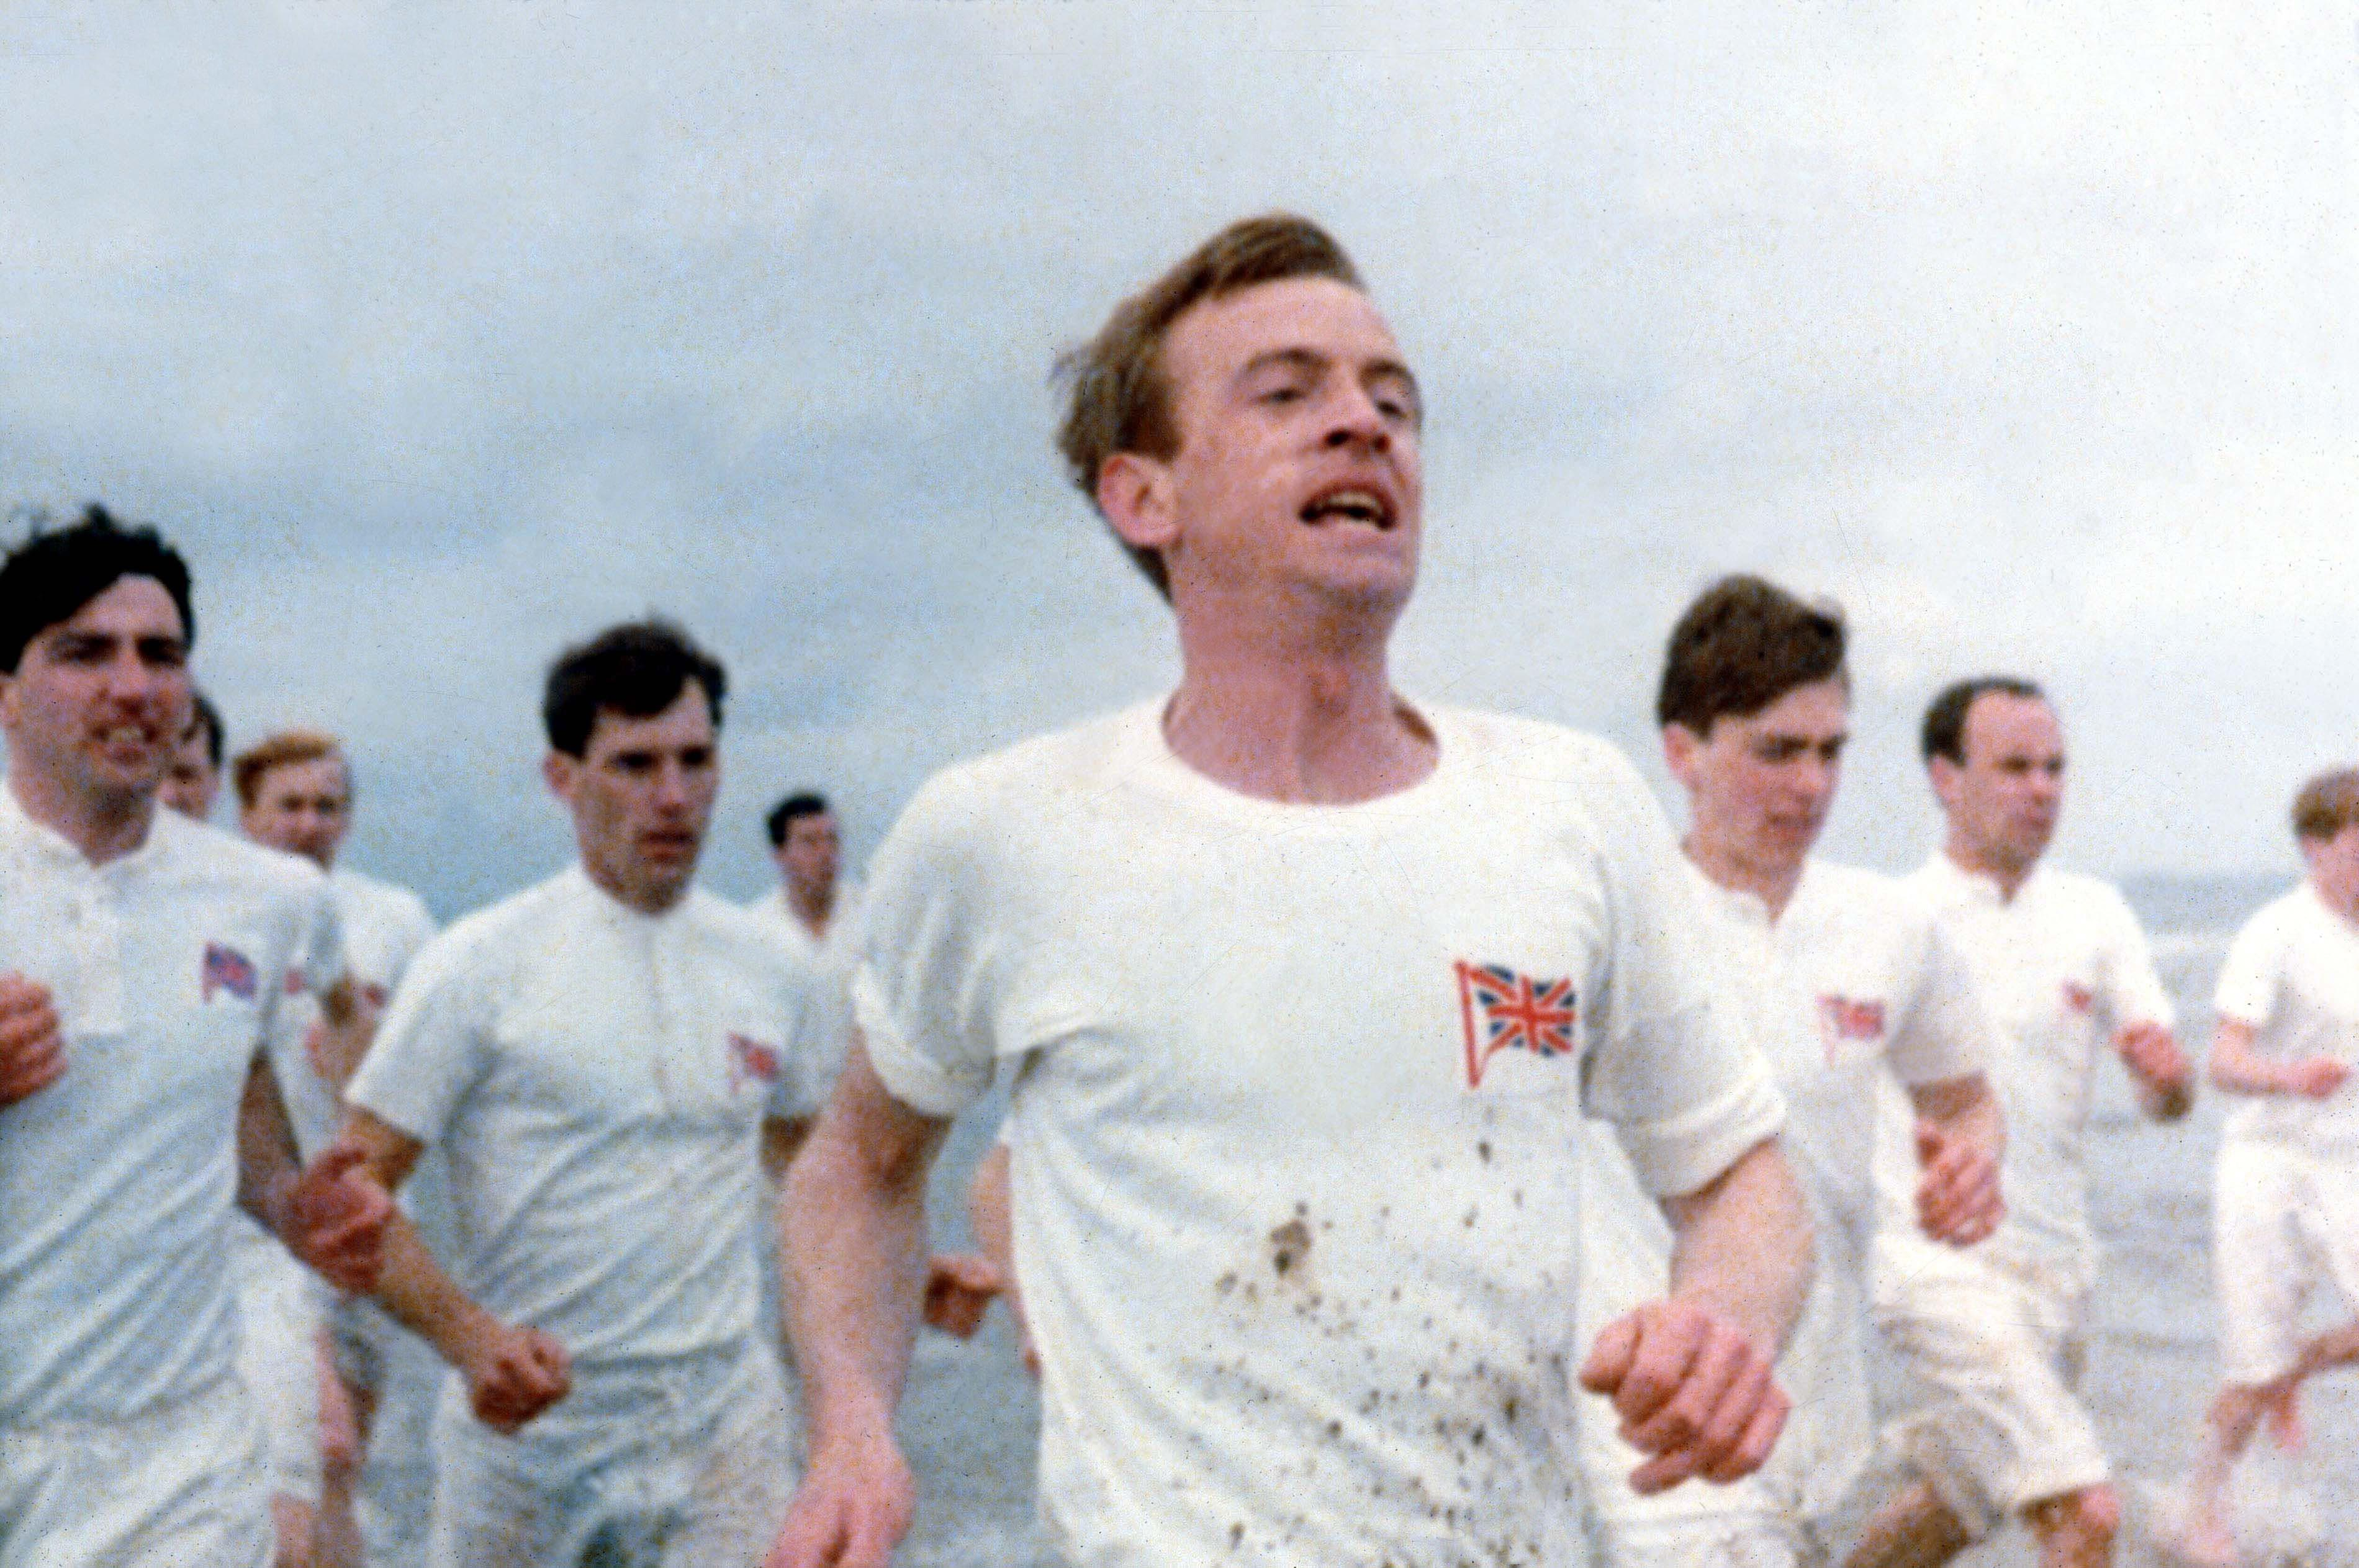 No Merchandising. Editorial Use Only. No Book Cover Usage.Mandatory Credit: Photo by 20th Century Fox/Allied Stars/Enigma/Kobal/REX/Shutterstock (5884751ac) Ian Charleson Chariots Of Fire - 1981 Director: Hugh Hudson 20th Century Fox/Allied Stars/Enigma BRITAIN Scene Still Drama Les Chariots de feu